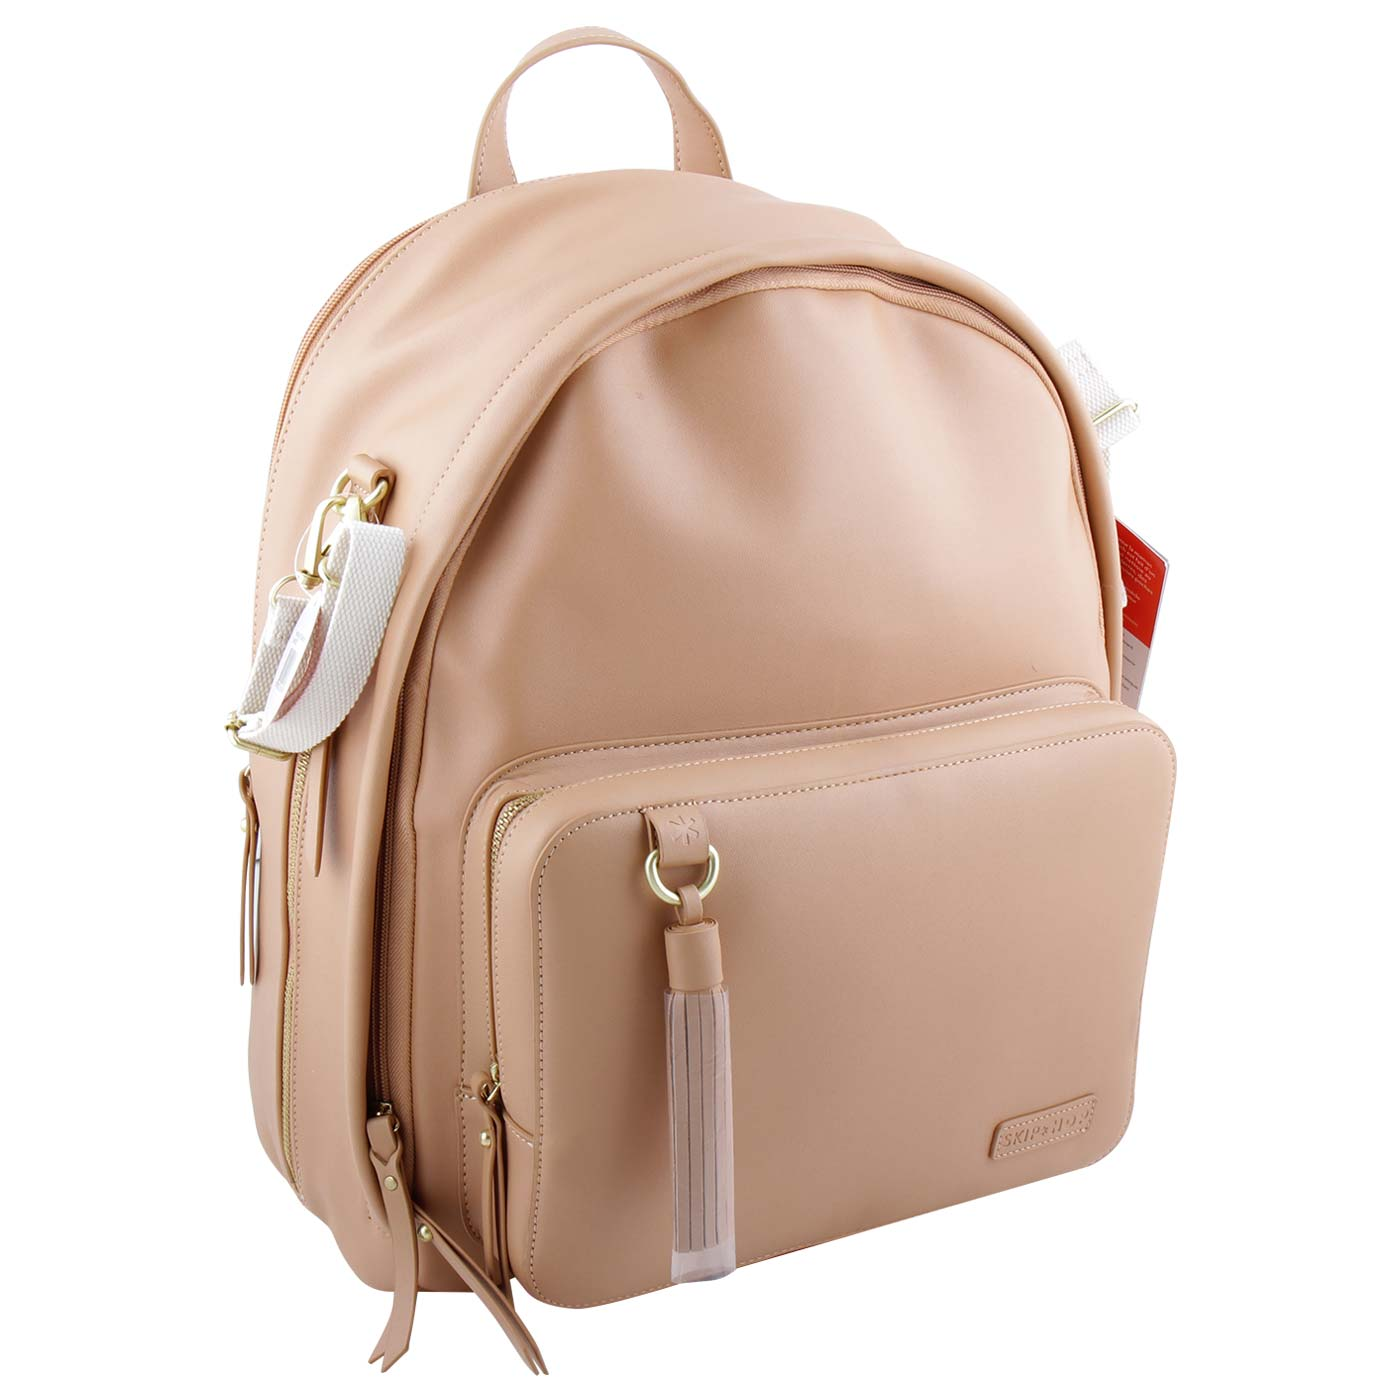 Skiphop Greenwich Simply Chic Backpack Caramel 2